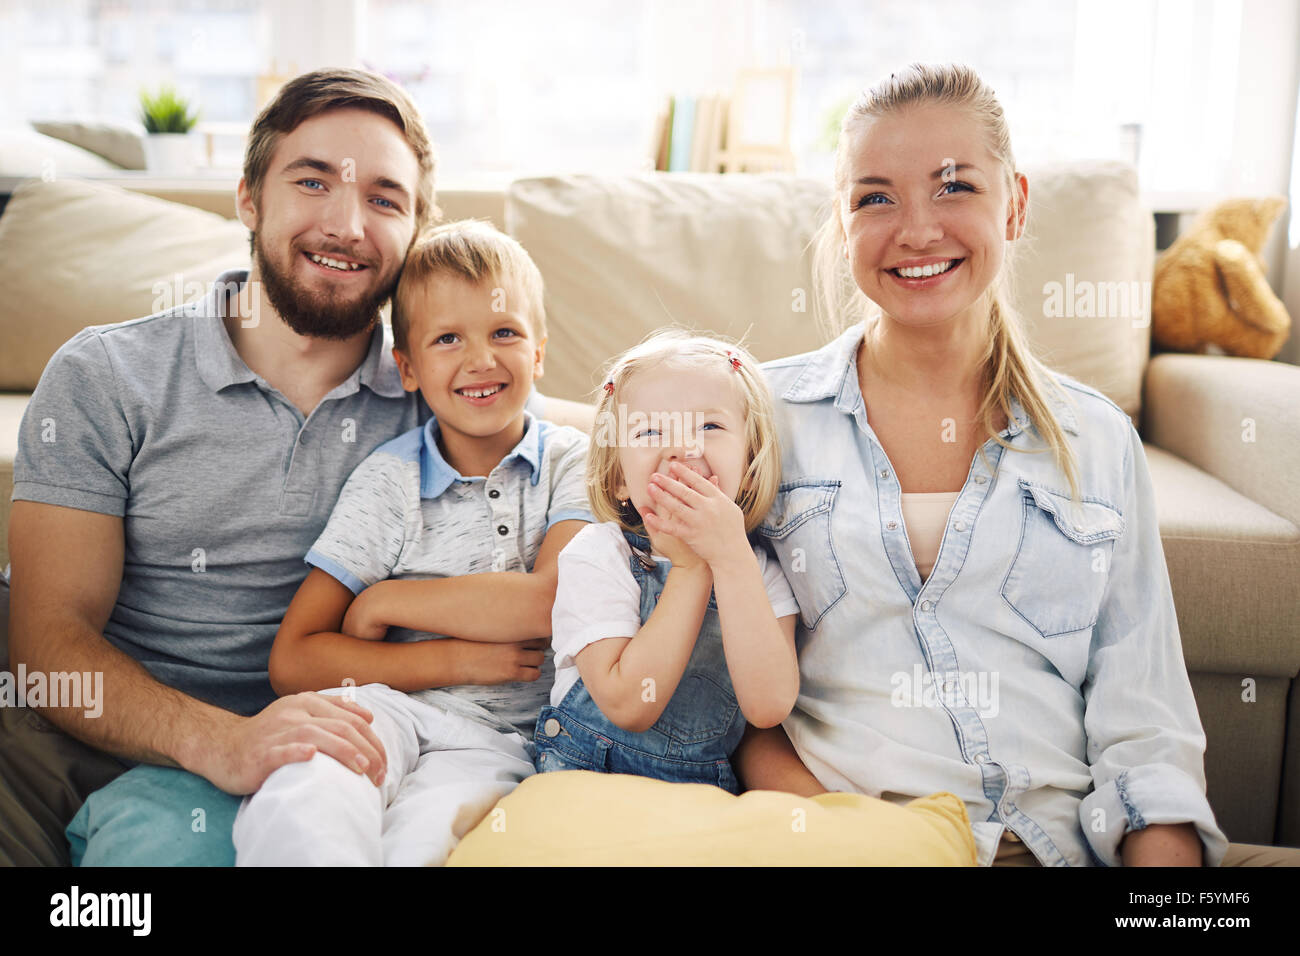 Happy family in casualwear relaxing at home - Stock Image